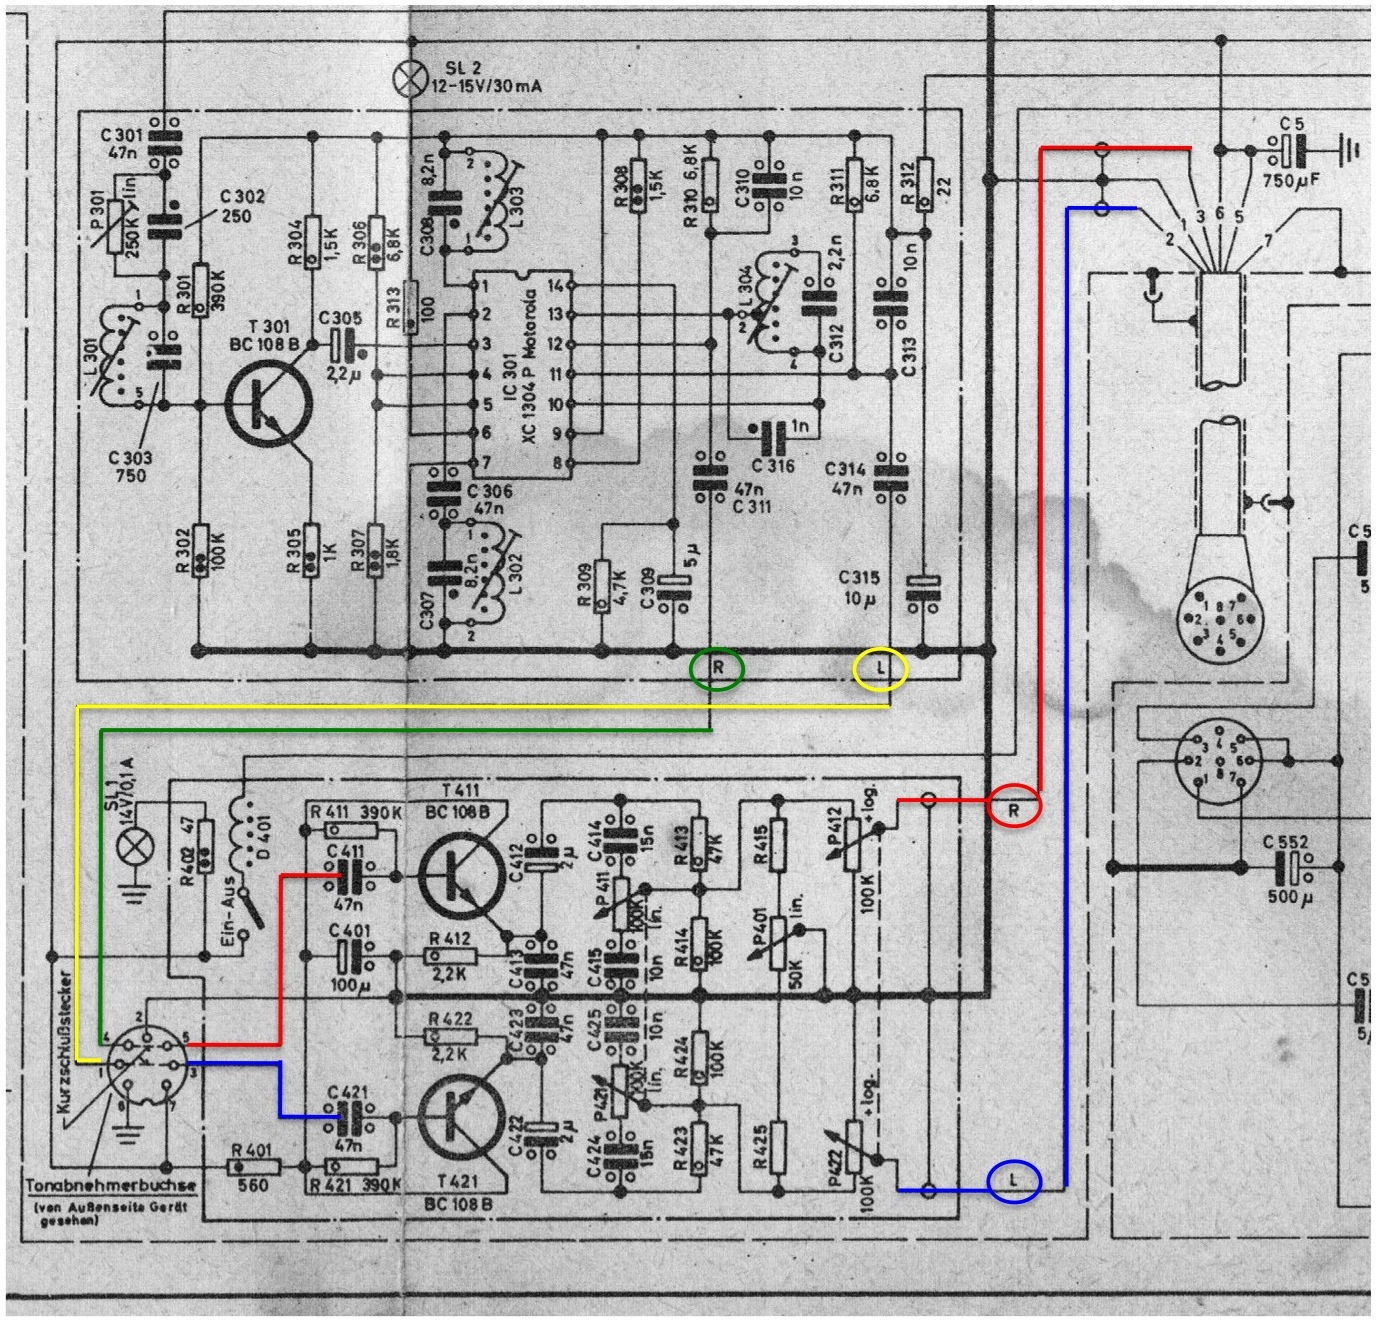 Pagoda sl group technical manual electrical ipod this is the circuitry for a stereo radio with separate amplifier for example europ stereo mu or grand prix stereo the relevant din 7 socket is shown in cheapraybanclubmaster Choice Image